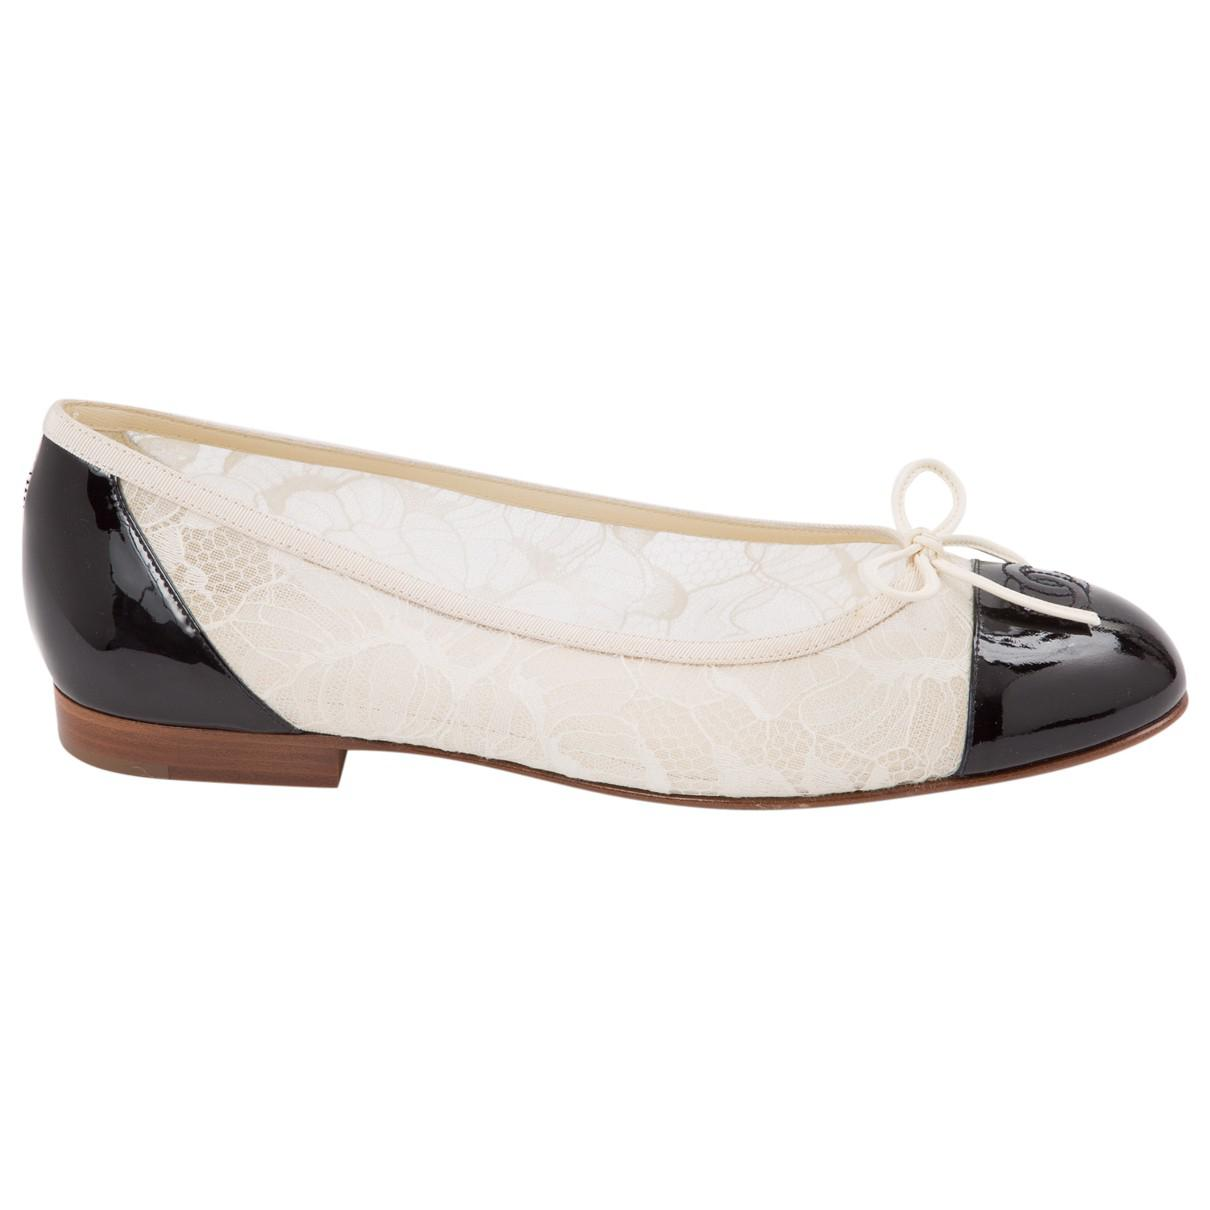 Pre-owned - Patent leather flats Chanel xHCn9